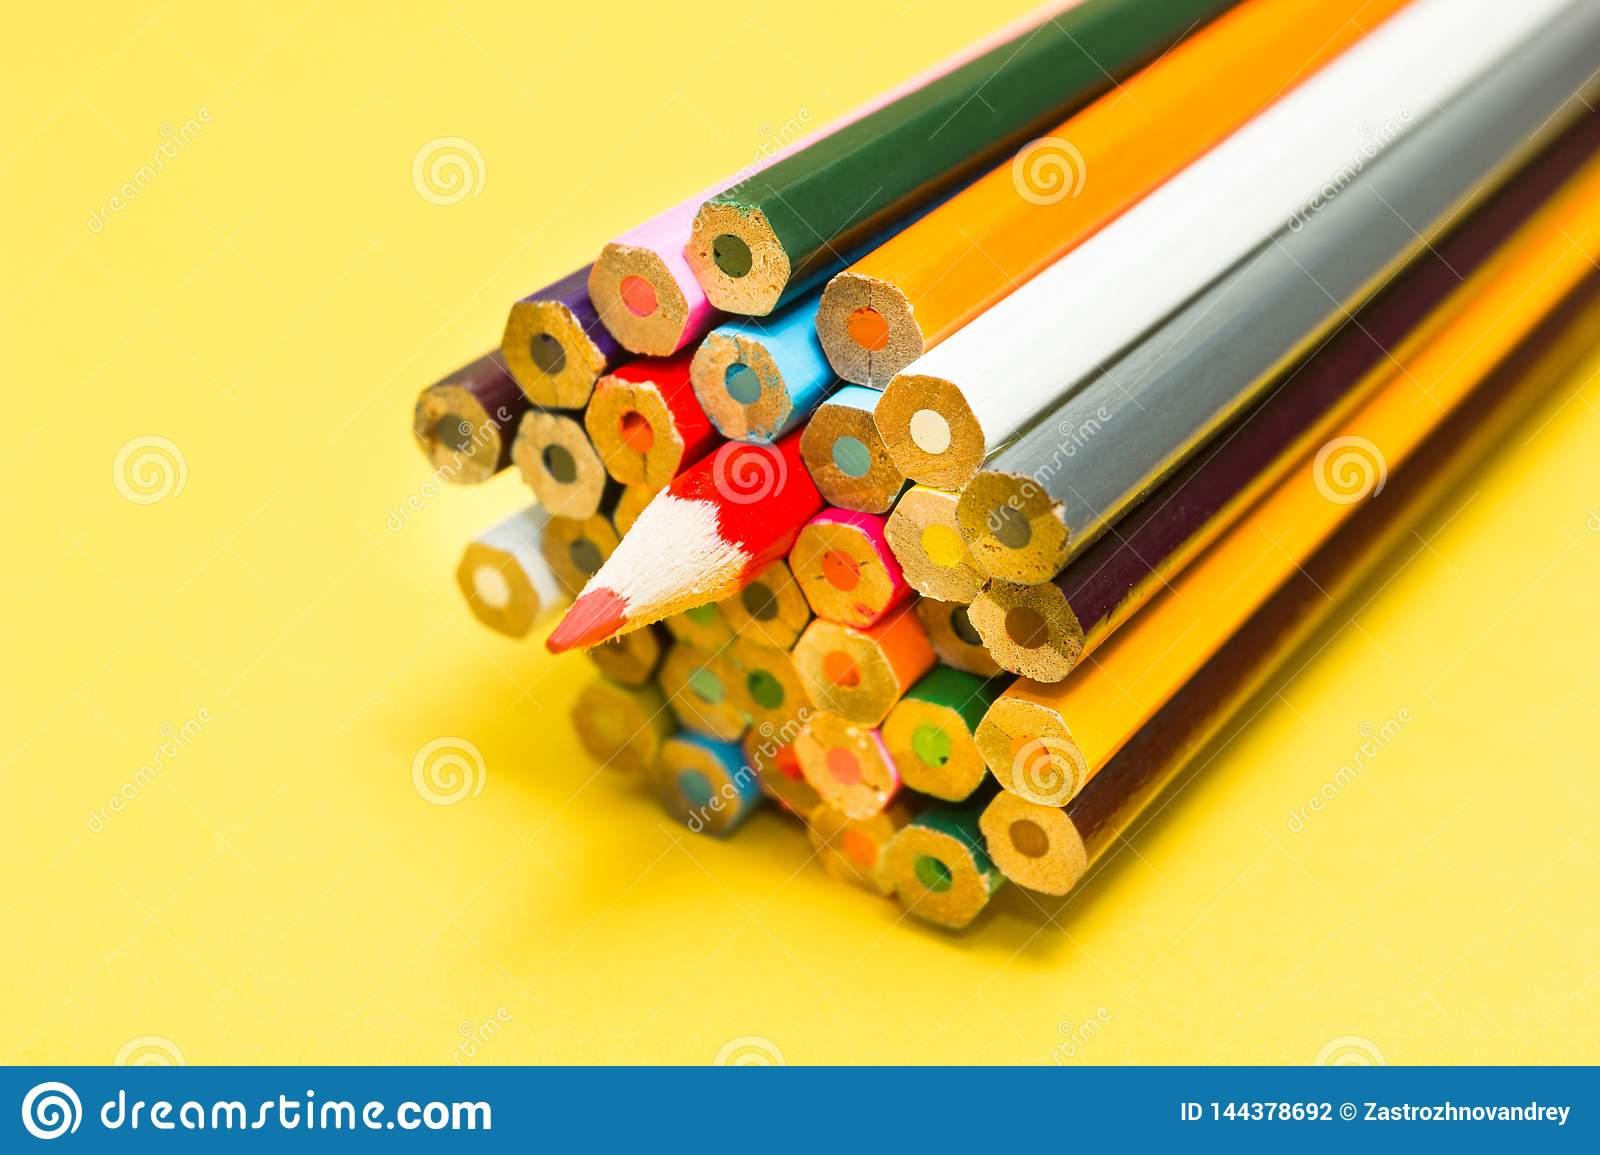 Bright abstract background of multi-colored pencils